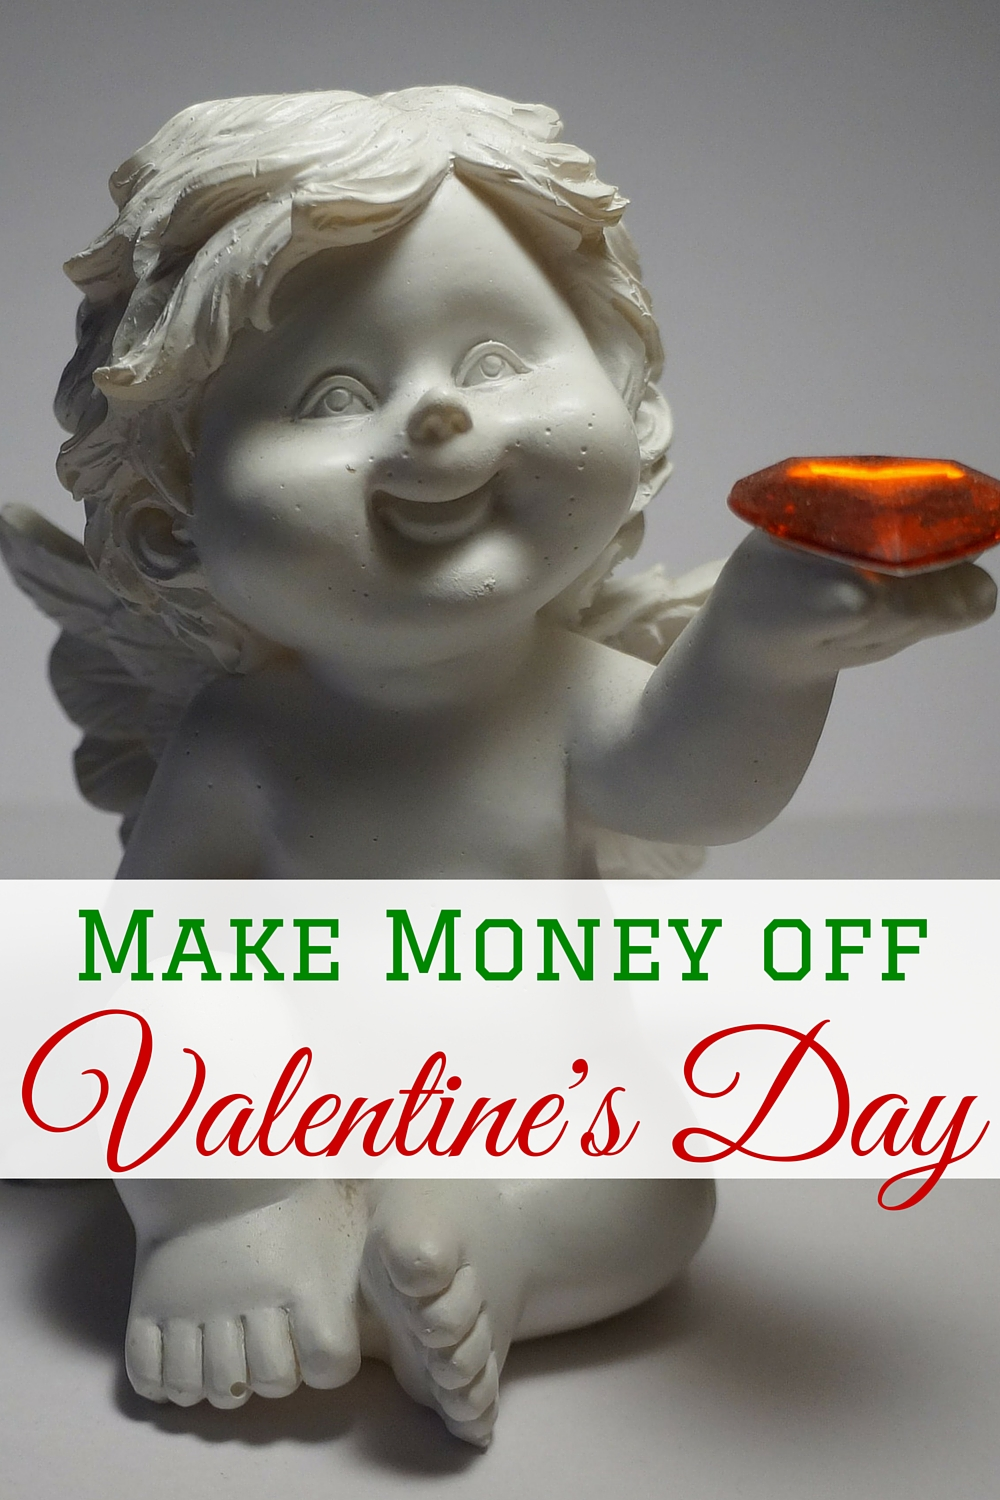 A frugal Valentine's Day is great, but wouldn't you rather make money off it?